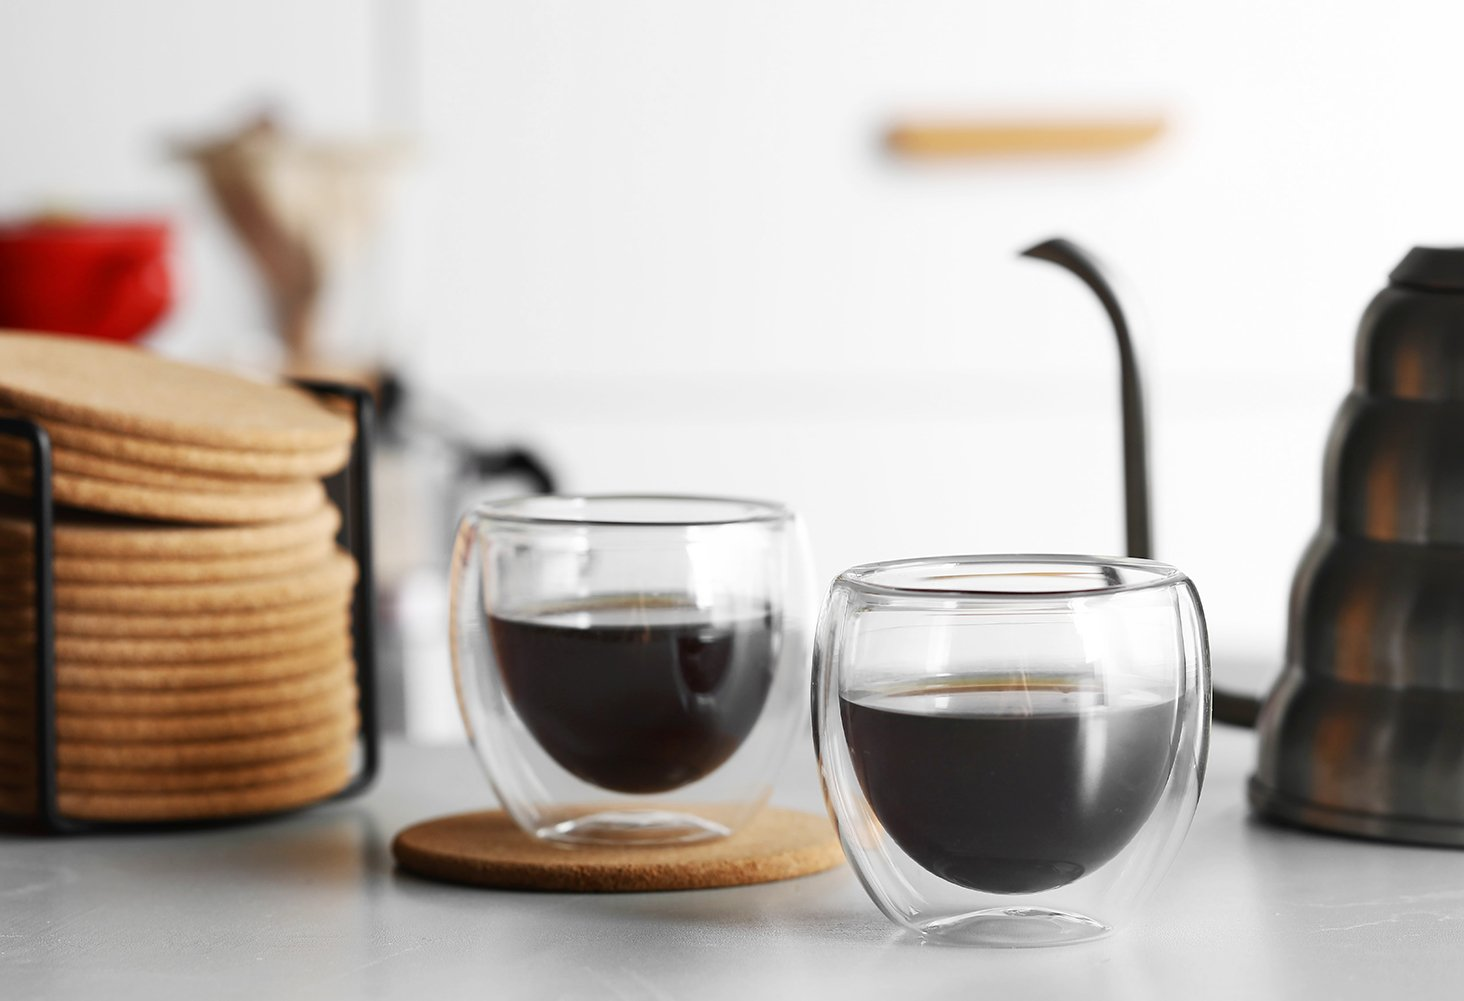 Espresso Glass Shot Cup Double Wall Thermo Insulated, 5.1 ounces(150ml) Set of 4 by LAUCHUH (Image #6)